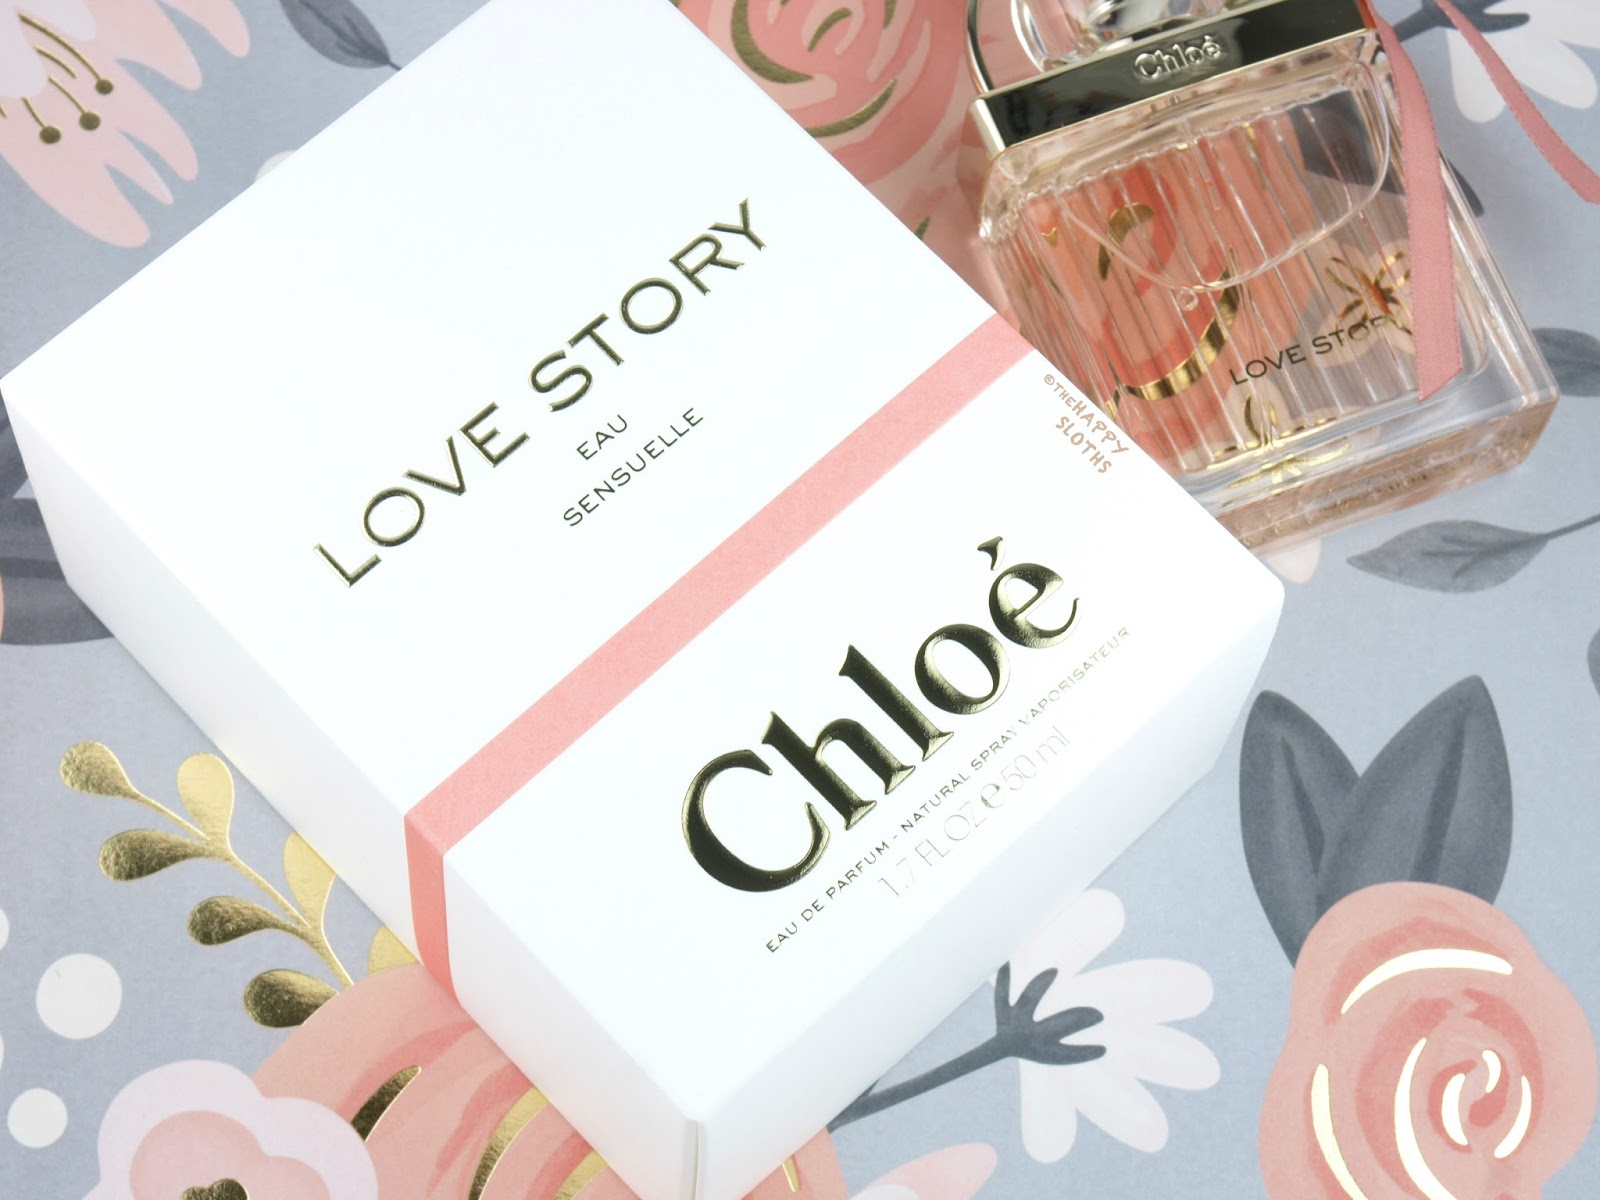 Chloe Love Story Eau Sensuelle: Review | The Happy Sloths | Bloglovin\'